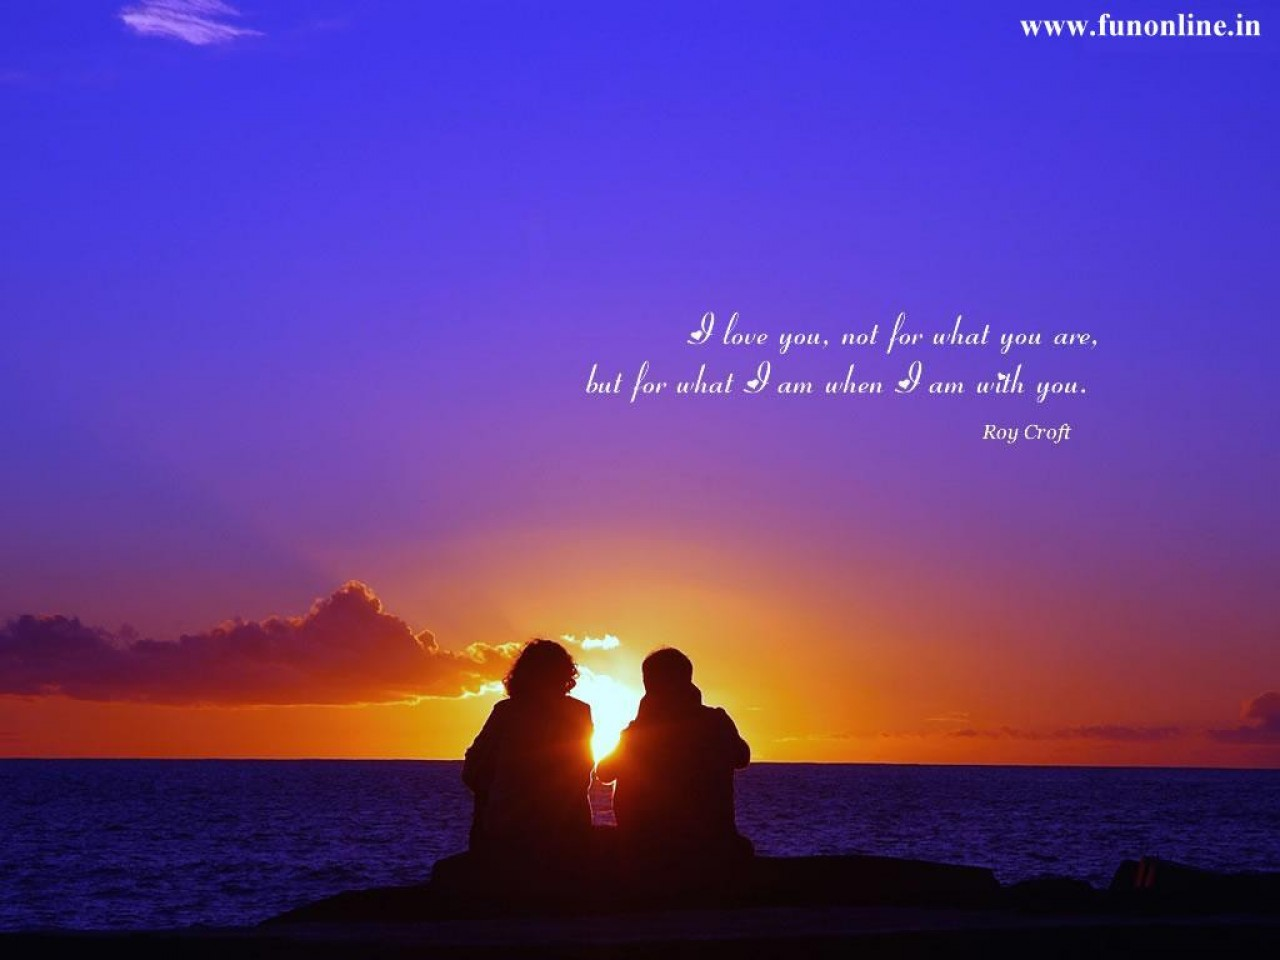 Love couple Wallpaper With Love Quotes : sad quotes wallpapers love quotes wallp[apers sad love quotes wallpapers tumblr quotes ...